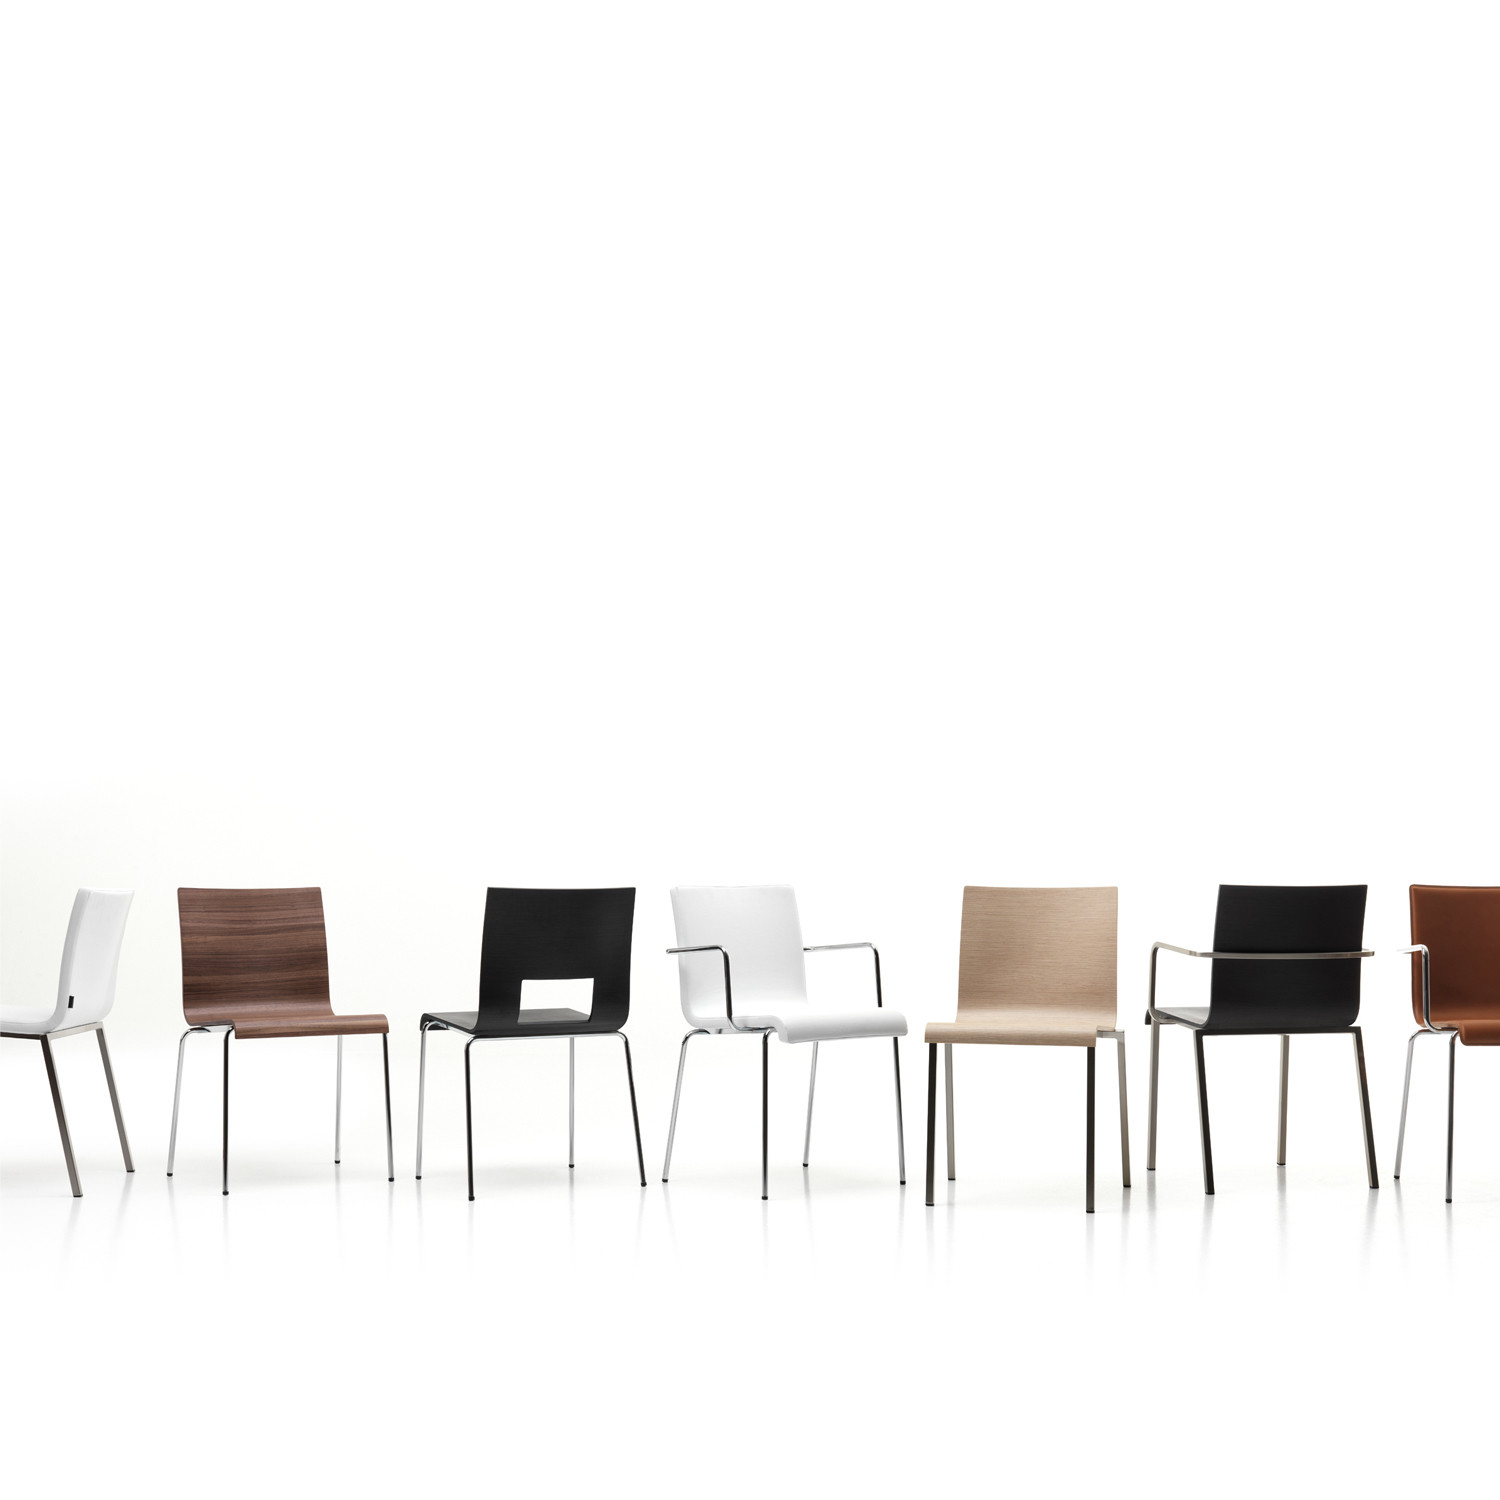 Kuadra XL Chair Range